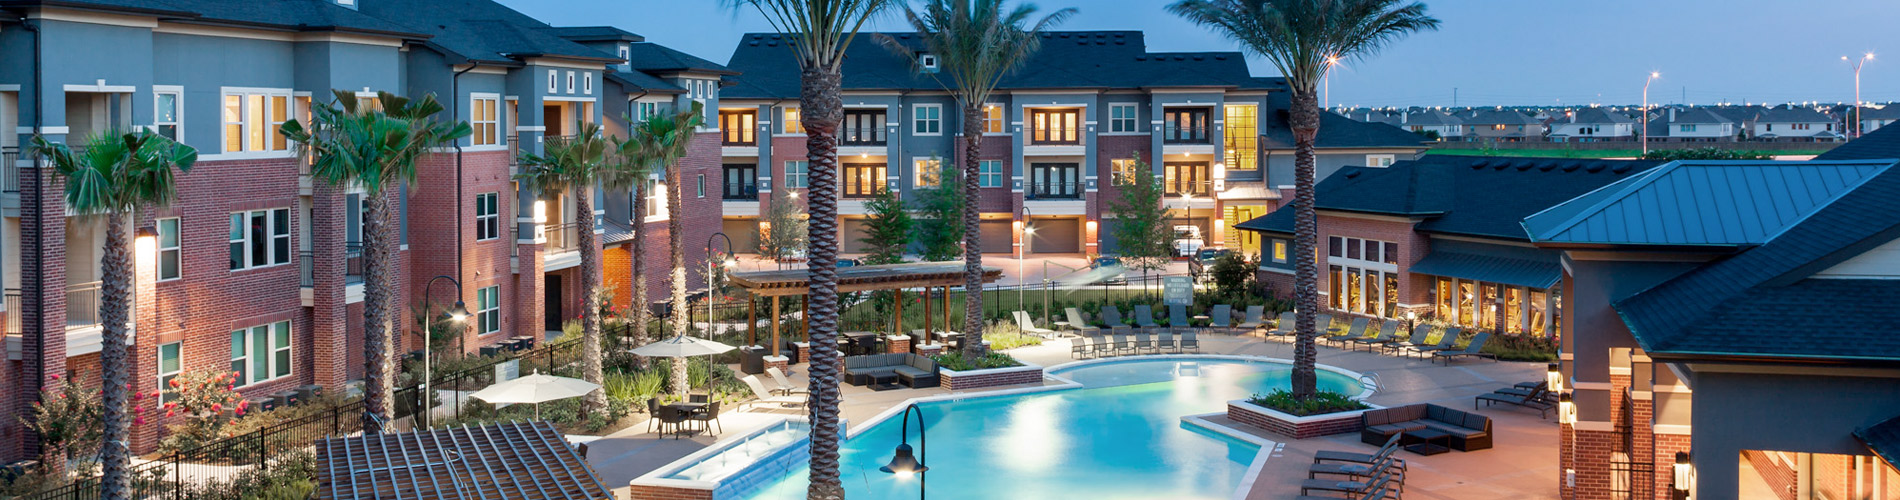 Trinsic Residential Group Multifamily Real Estate Development